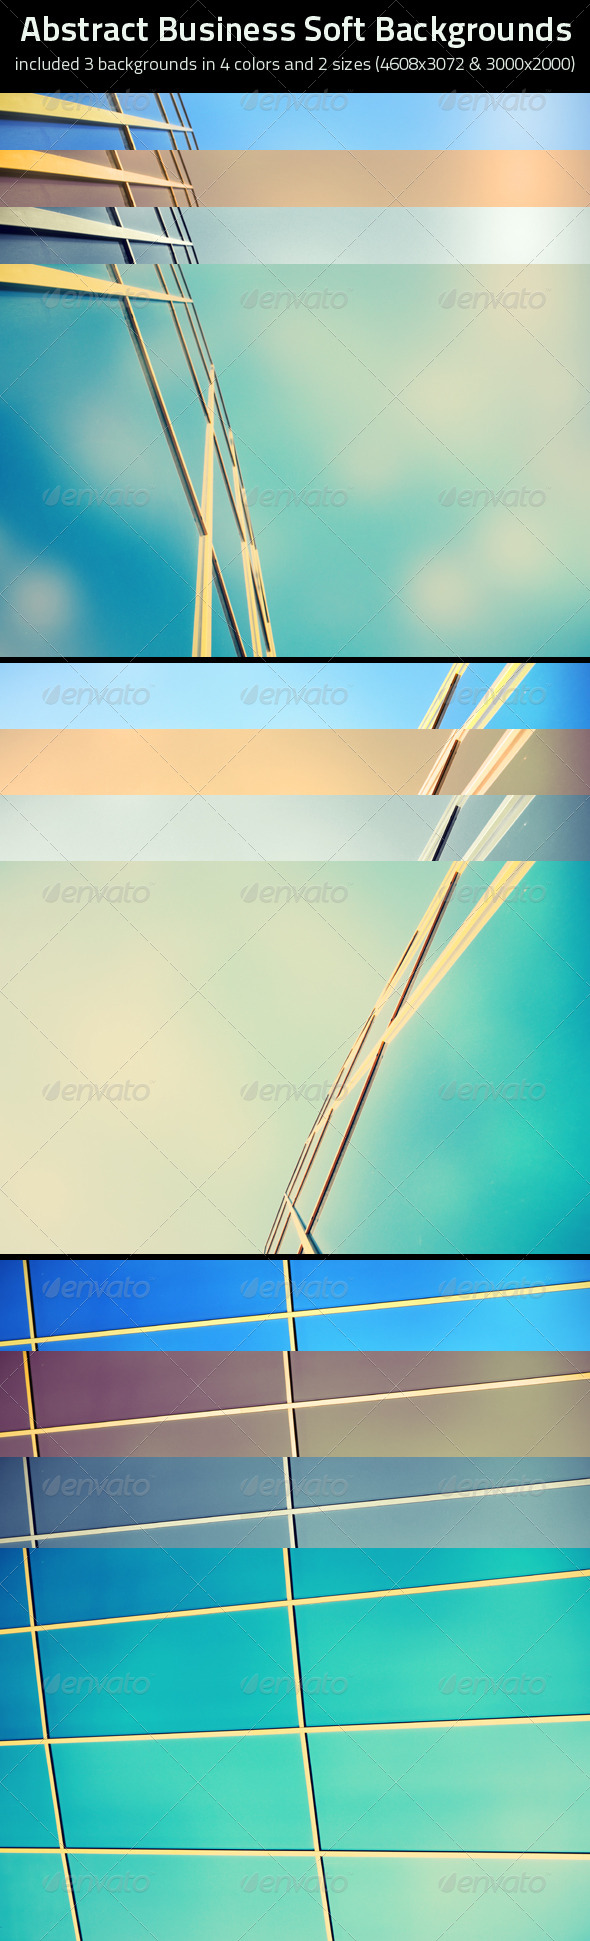 GraphicRiver Abstract Business Soft Backgrounds 4466807